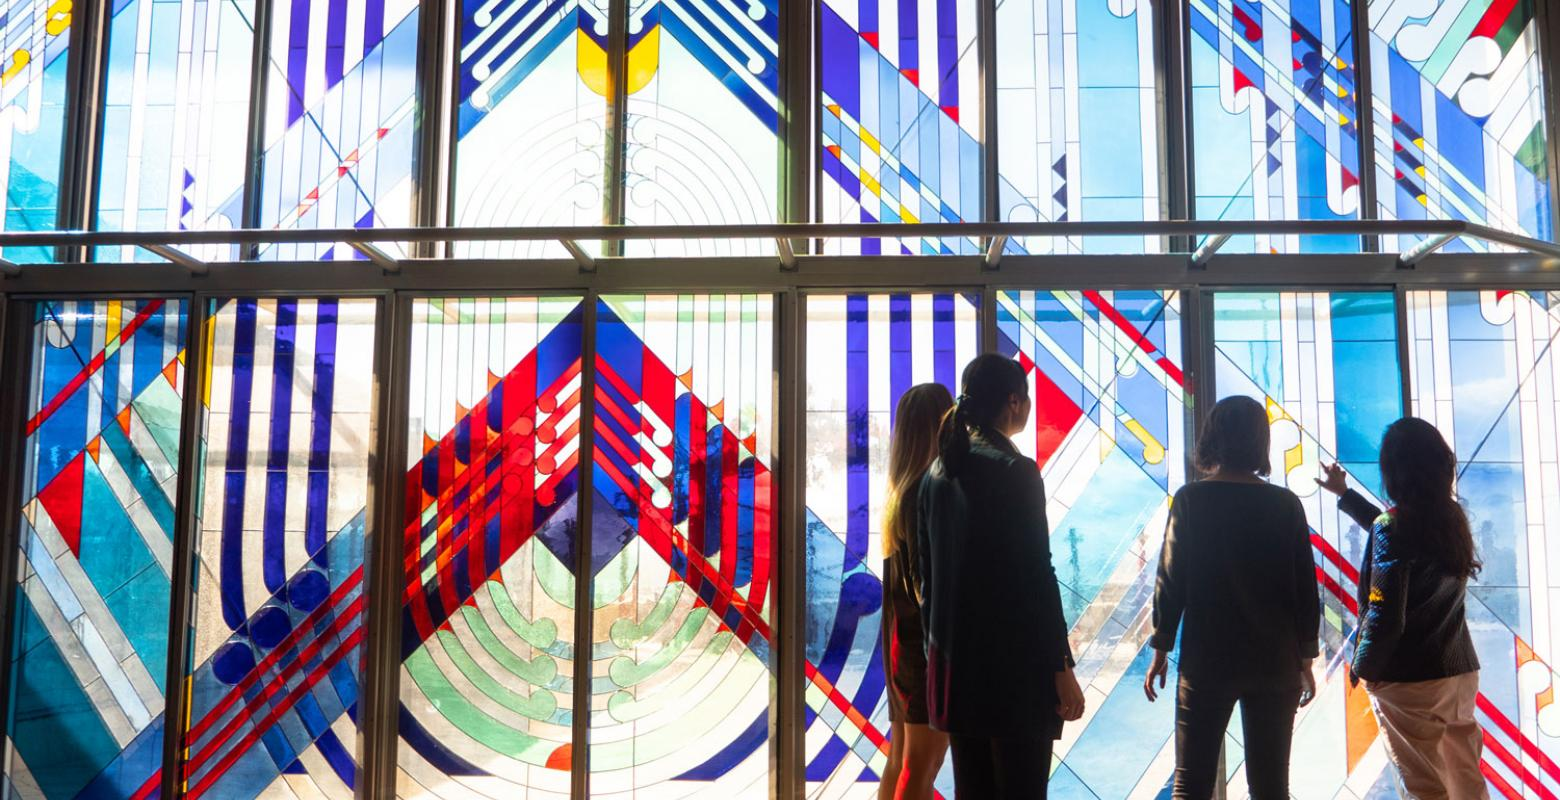 People looking at stained-glass windows